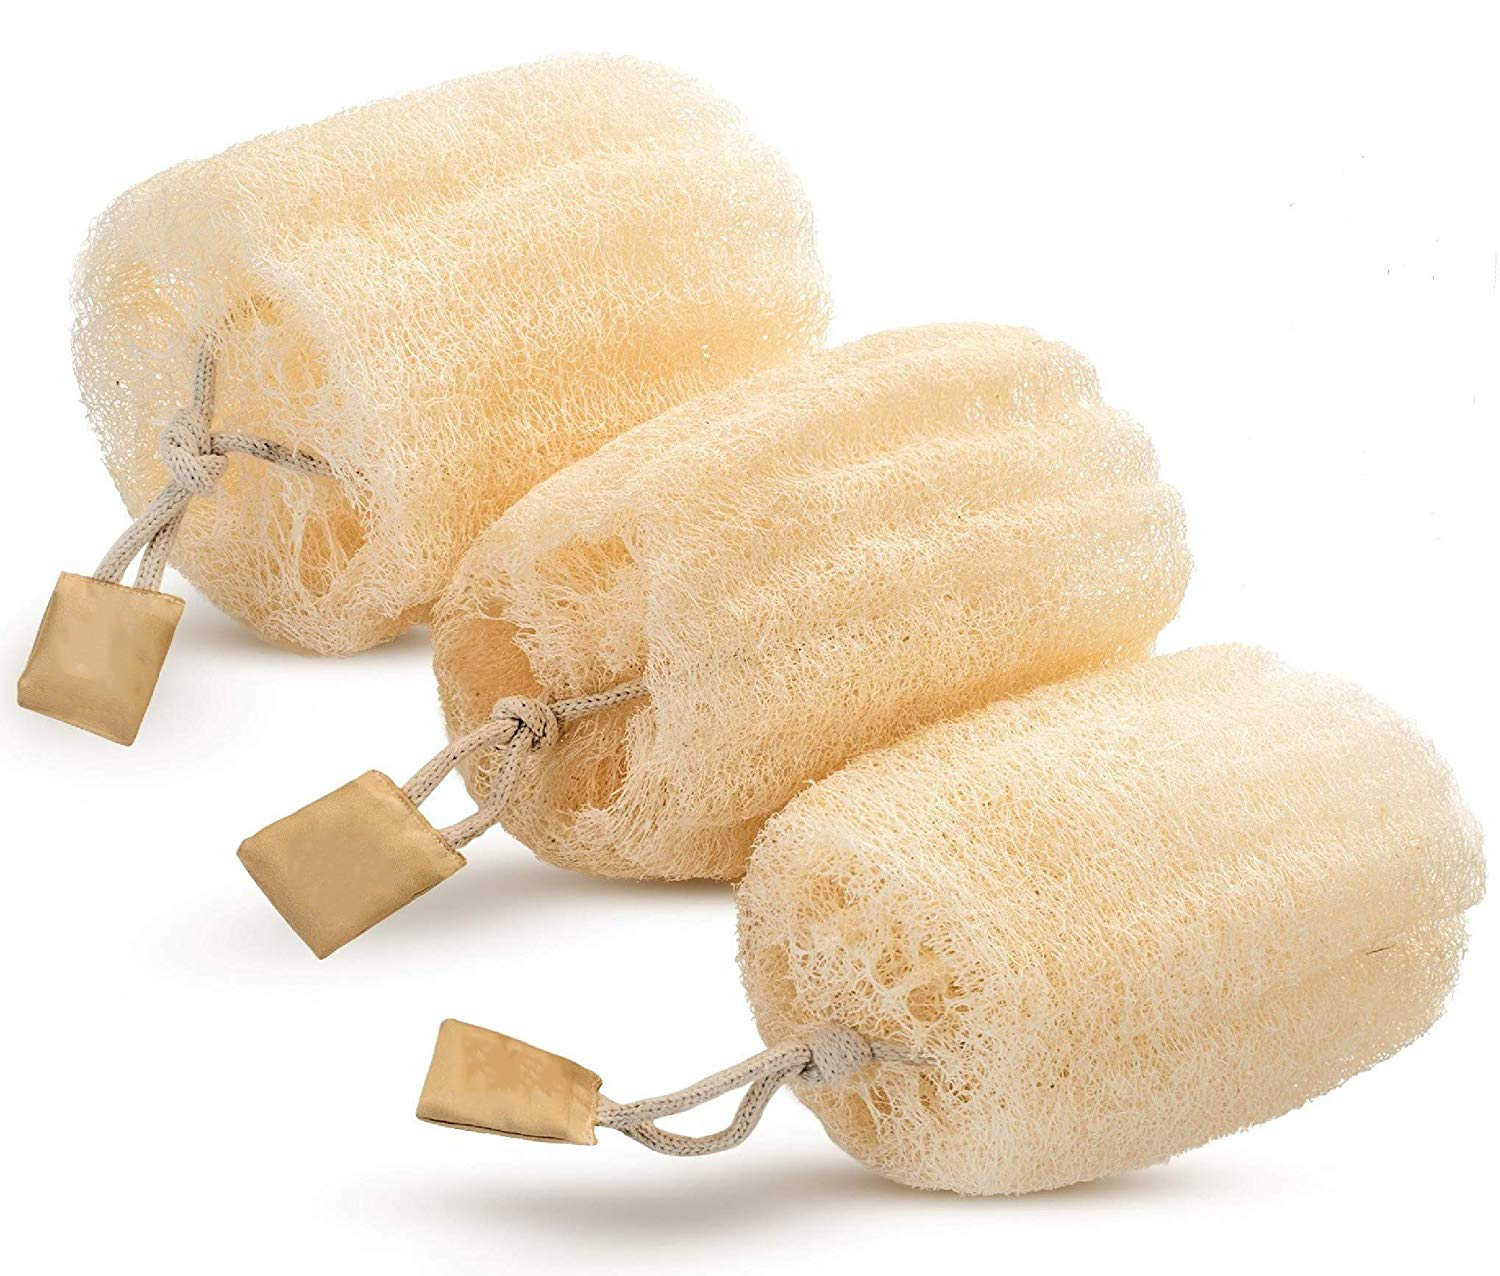 Natural Loofah Sponge Pieces With Rope